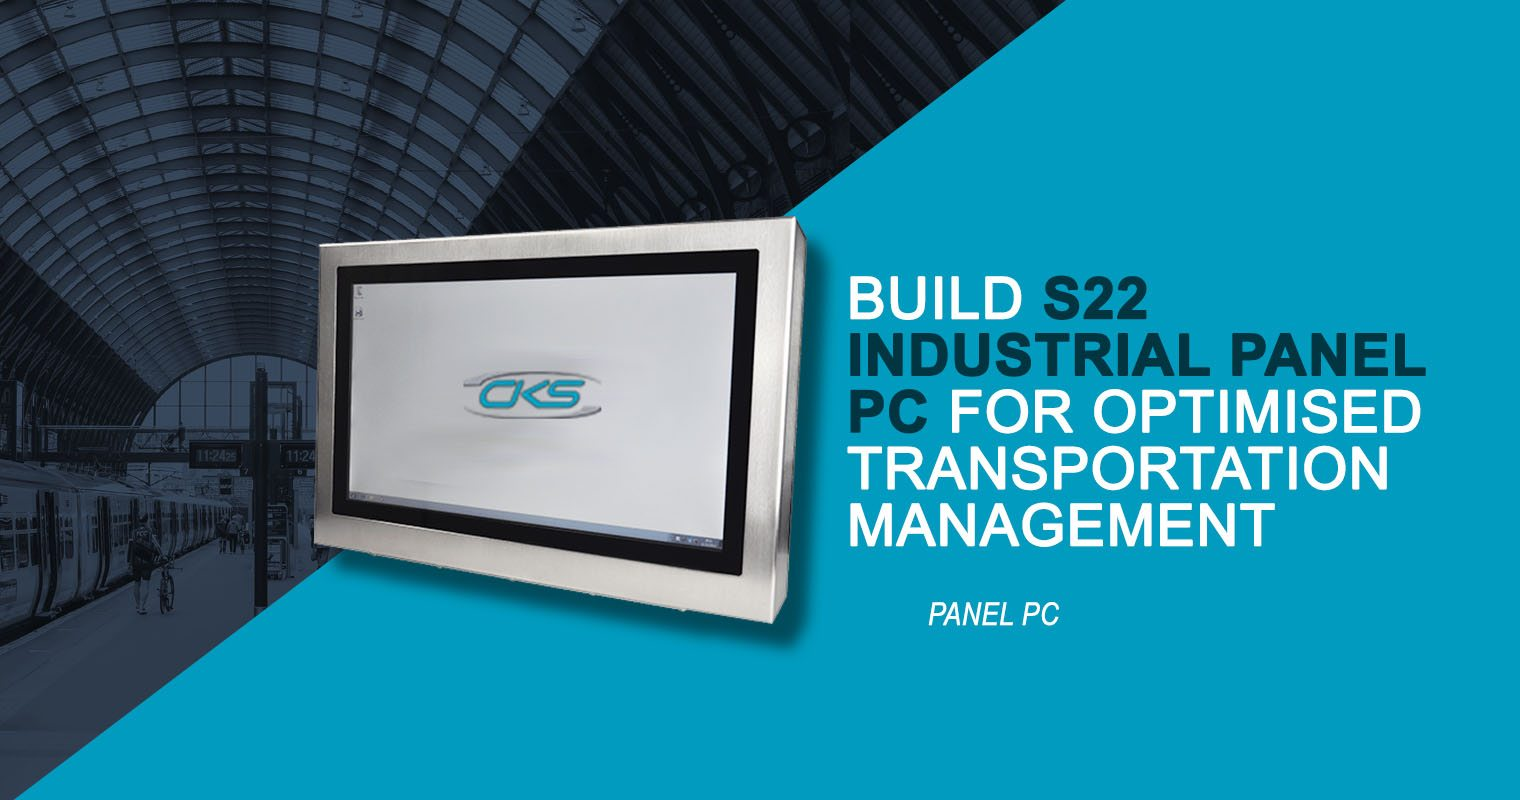 Advancing to S22 Industrial Panel PC for an Improved Transportation Management